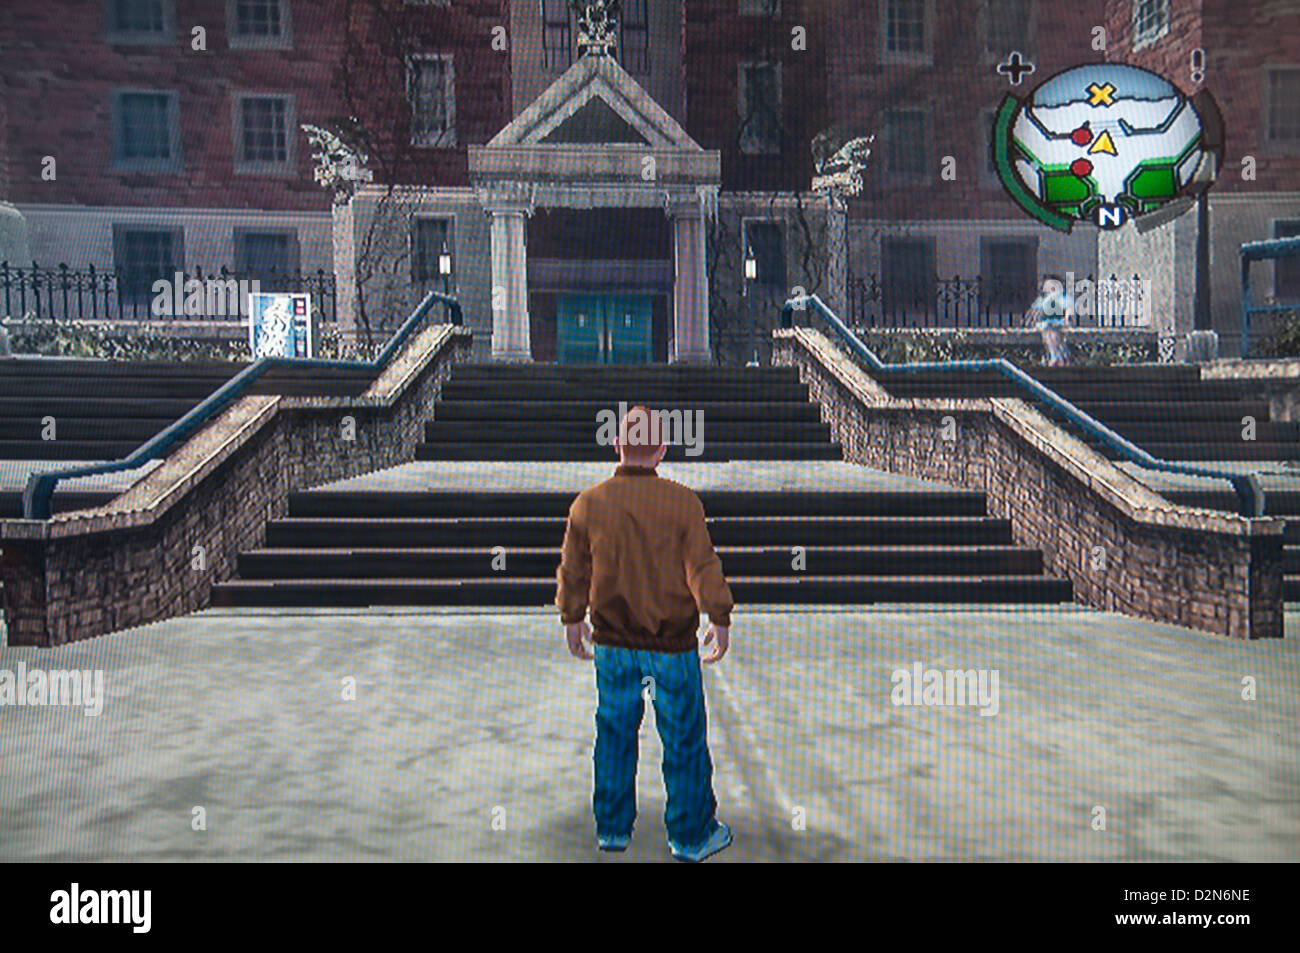 Grand Theft Auto video game - Stock Image